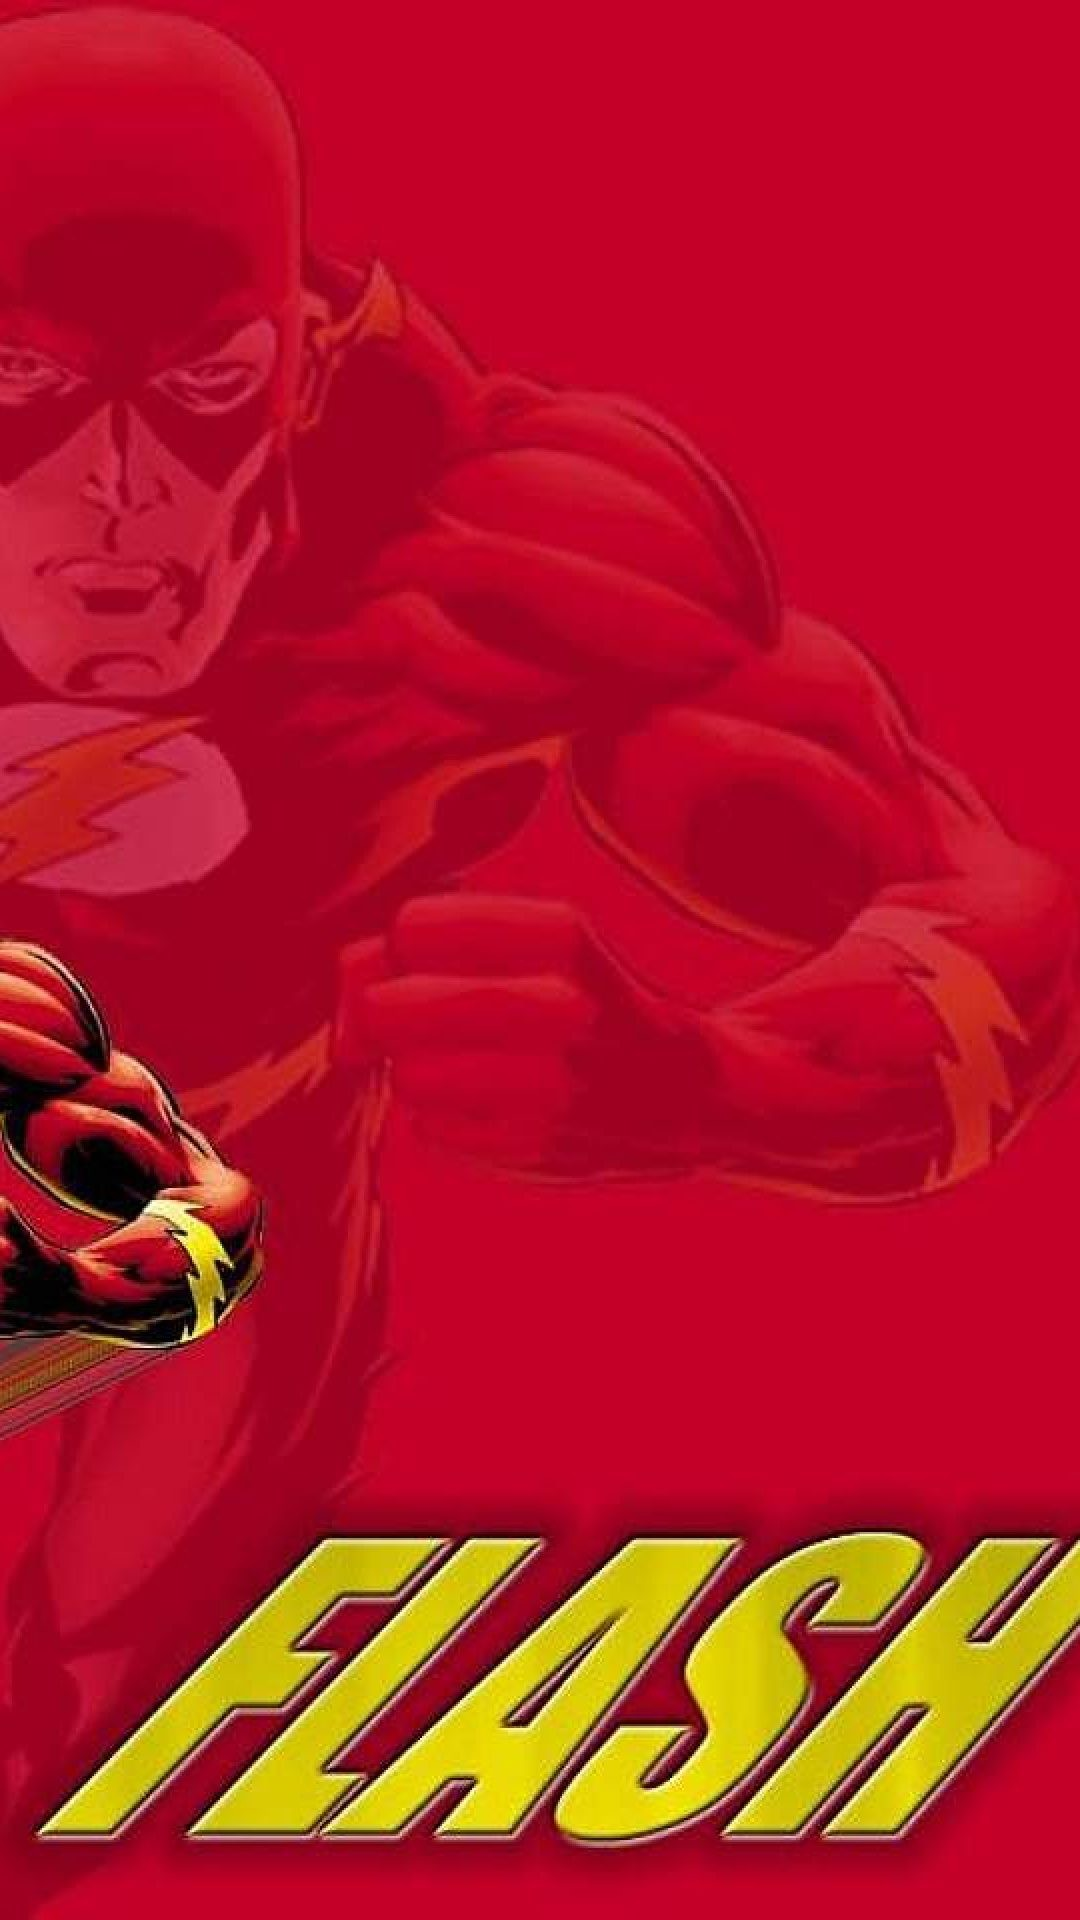 dc superhero wallpapers, the flash superhero wallpaper